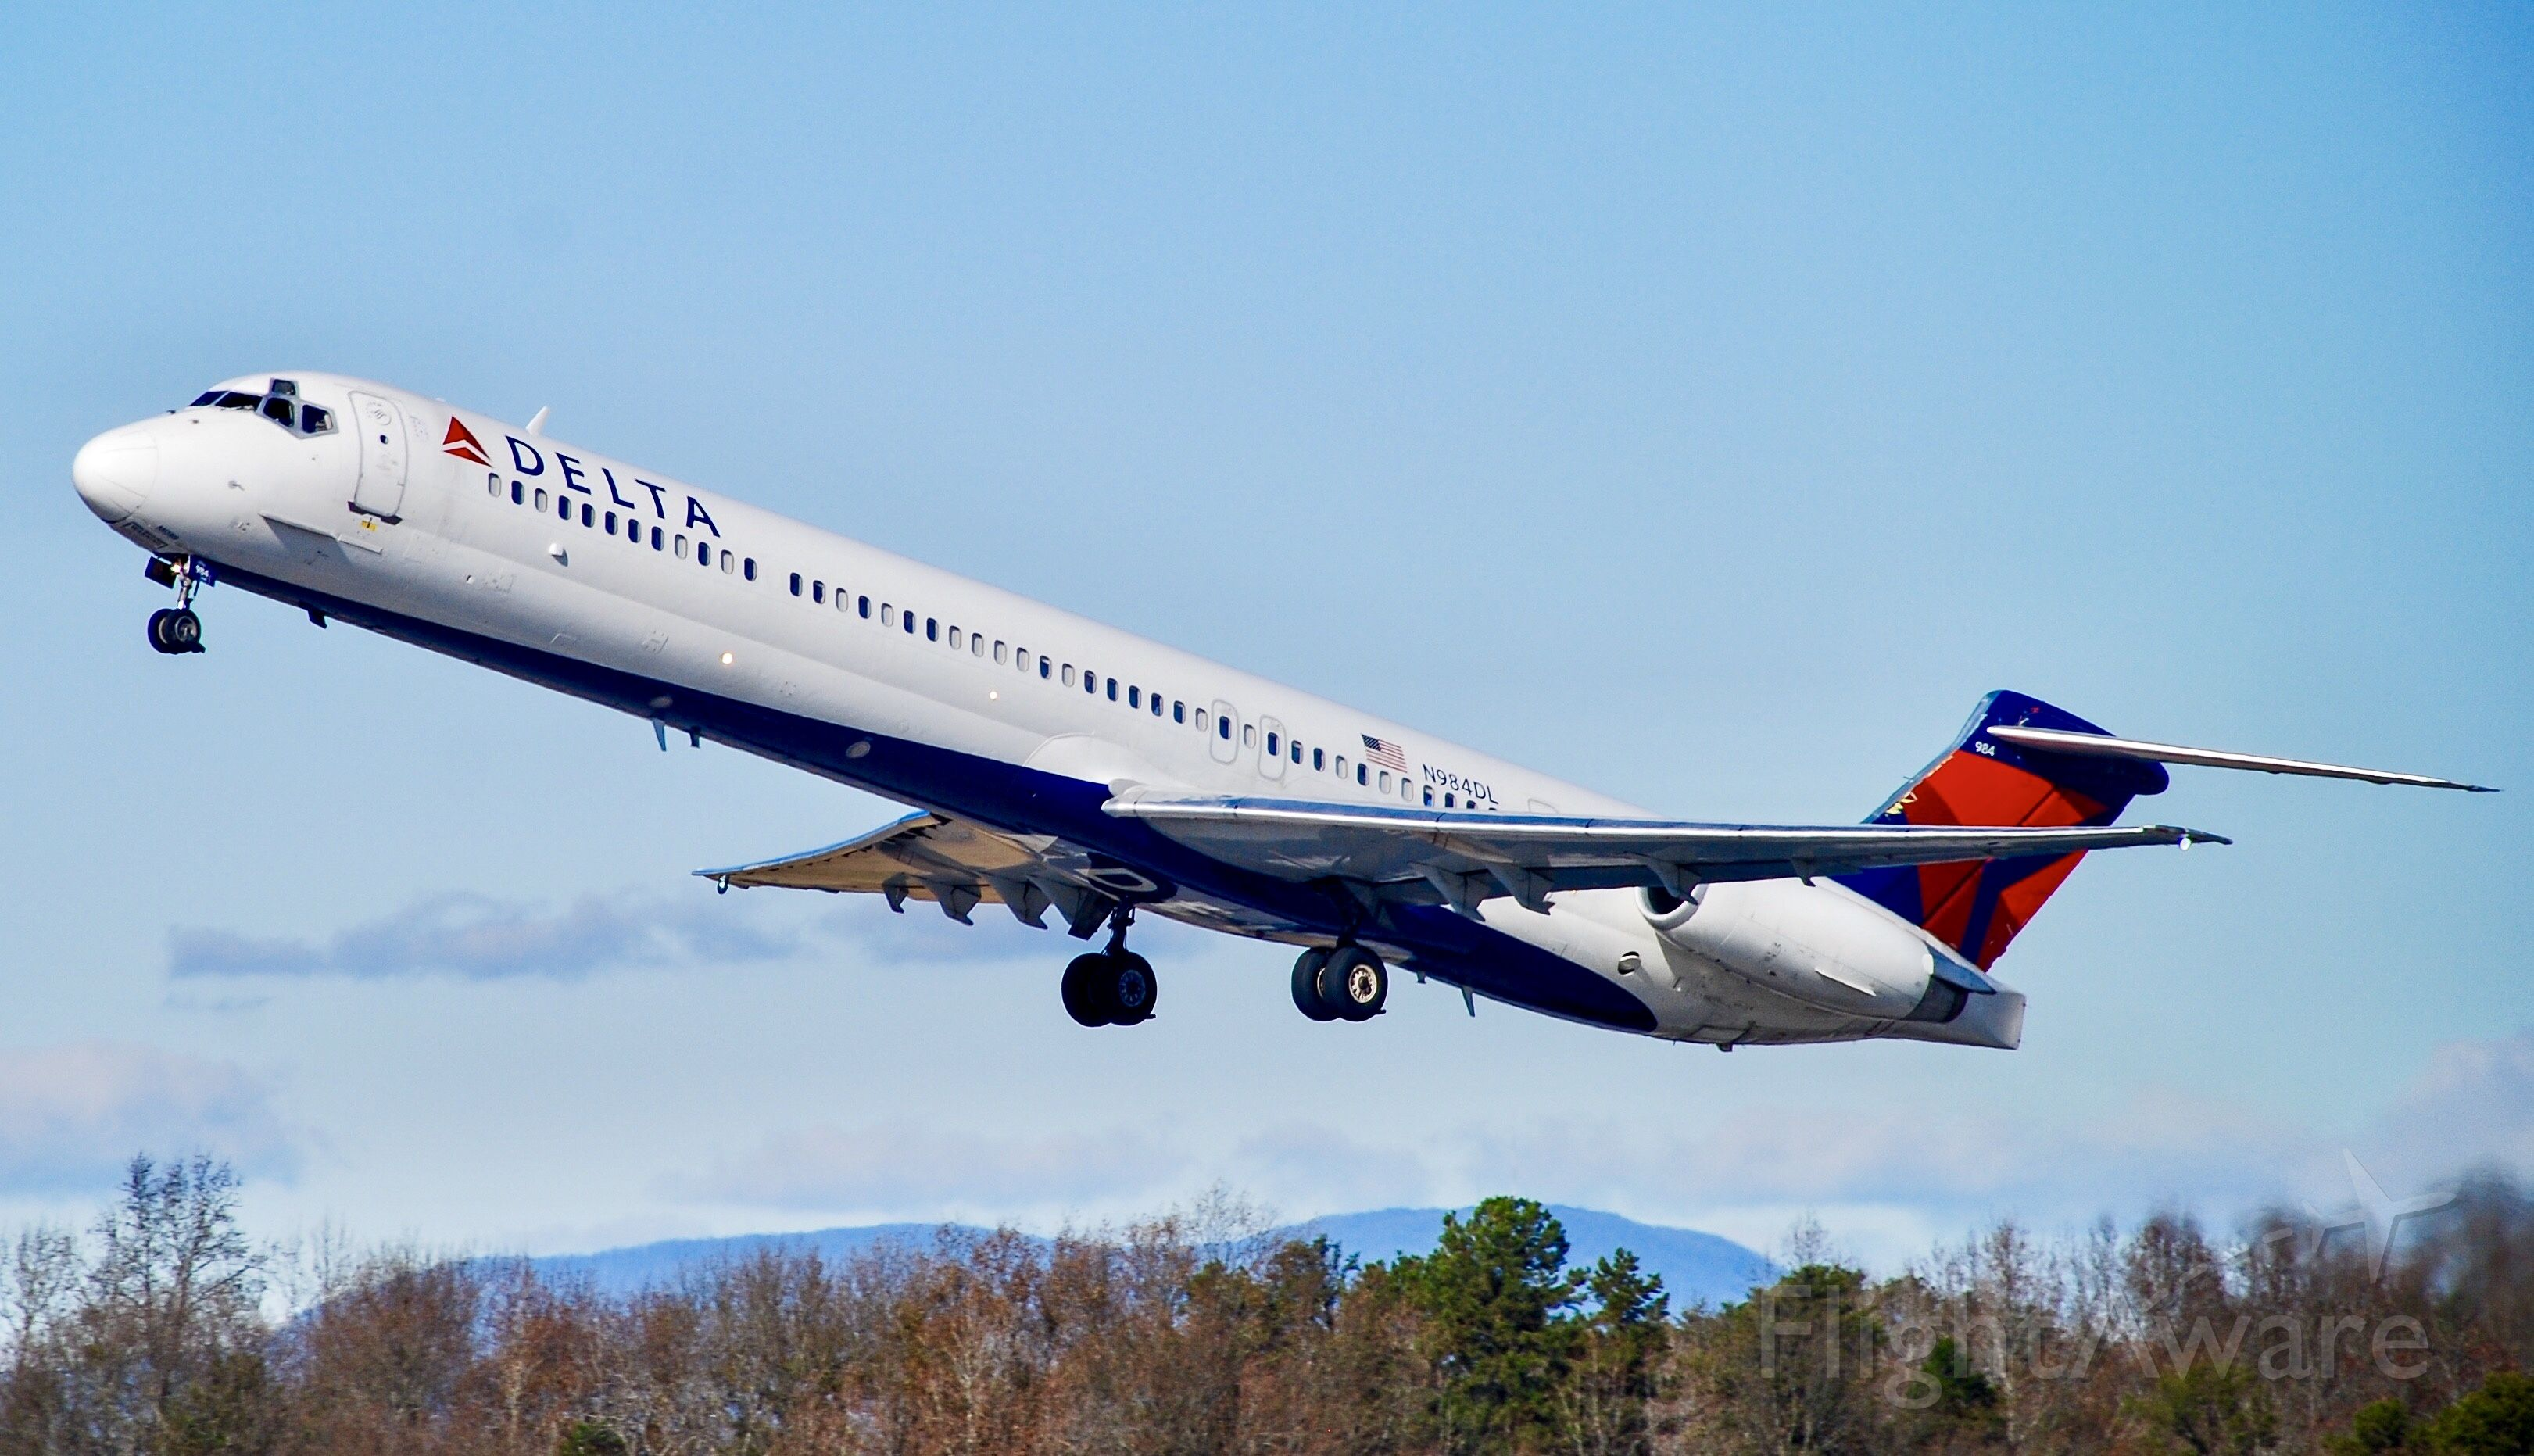 McDonnell Douglas MD-88 (N984DL) - Farewell to the MD-88!  What an amazing aircraft!